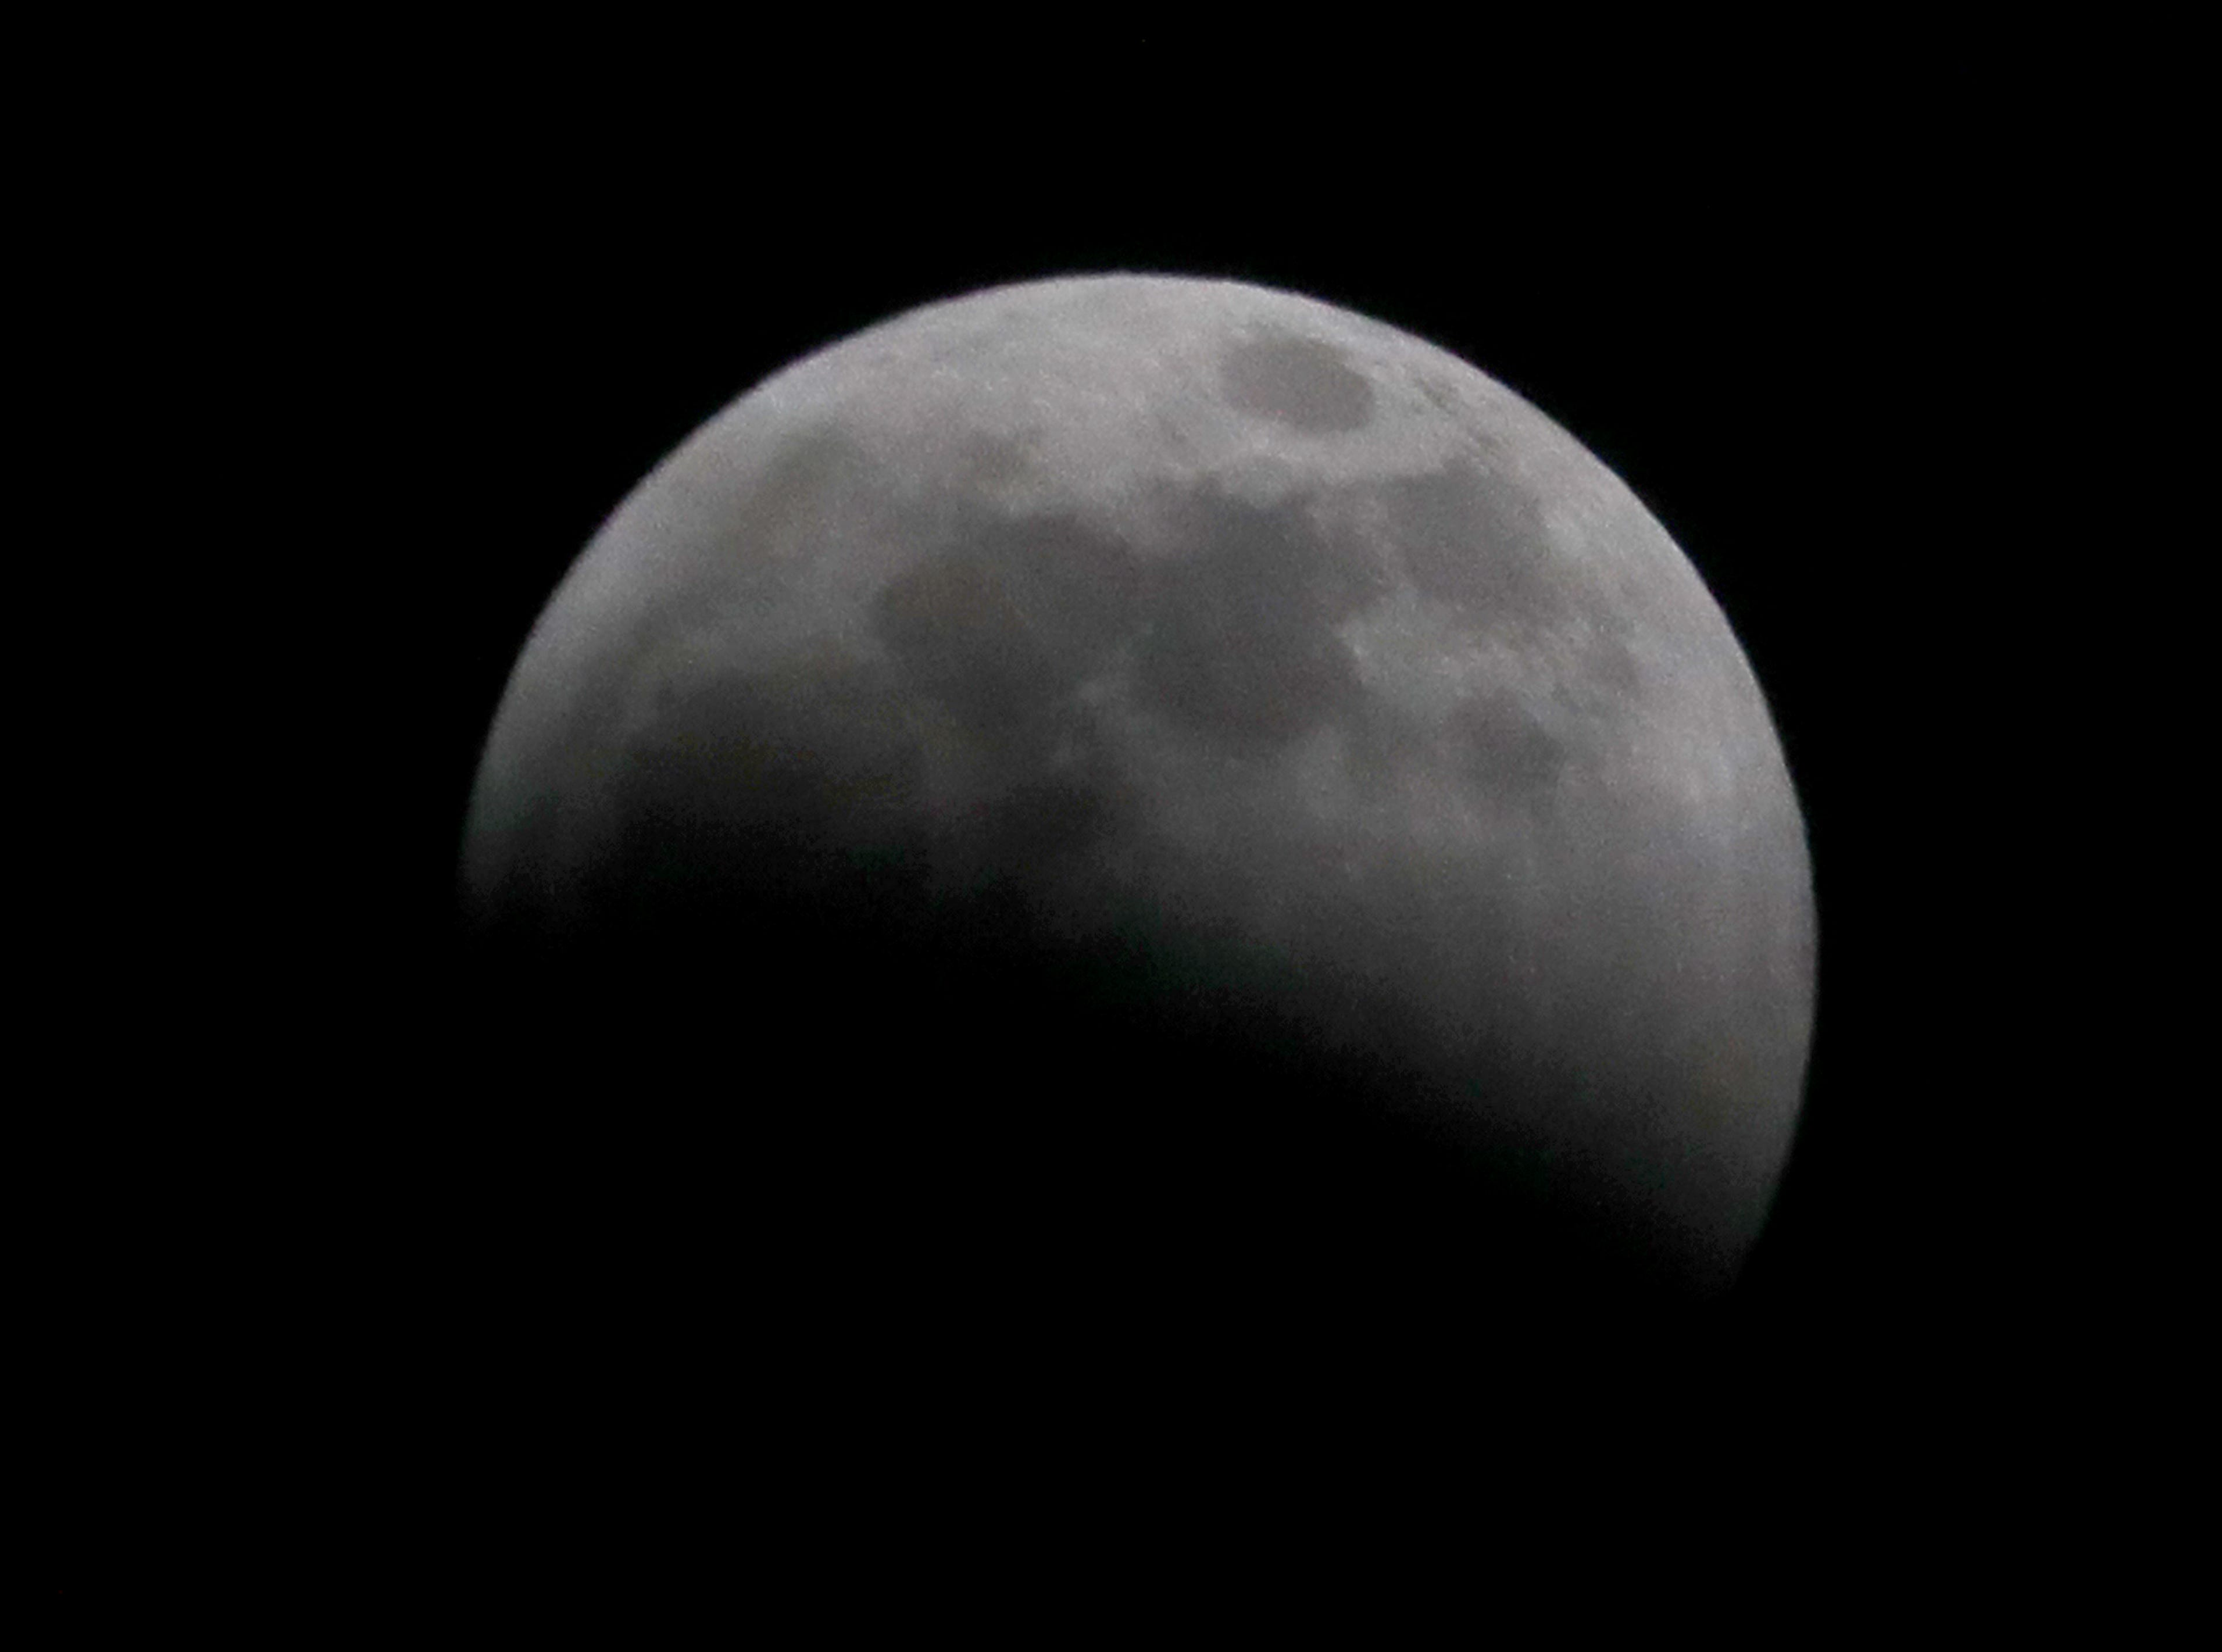 The start of a total lunar eclipse continues.